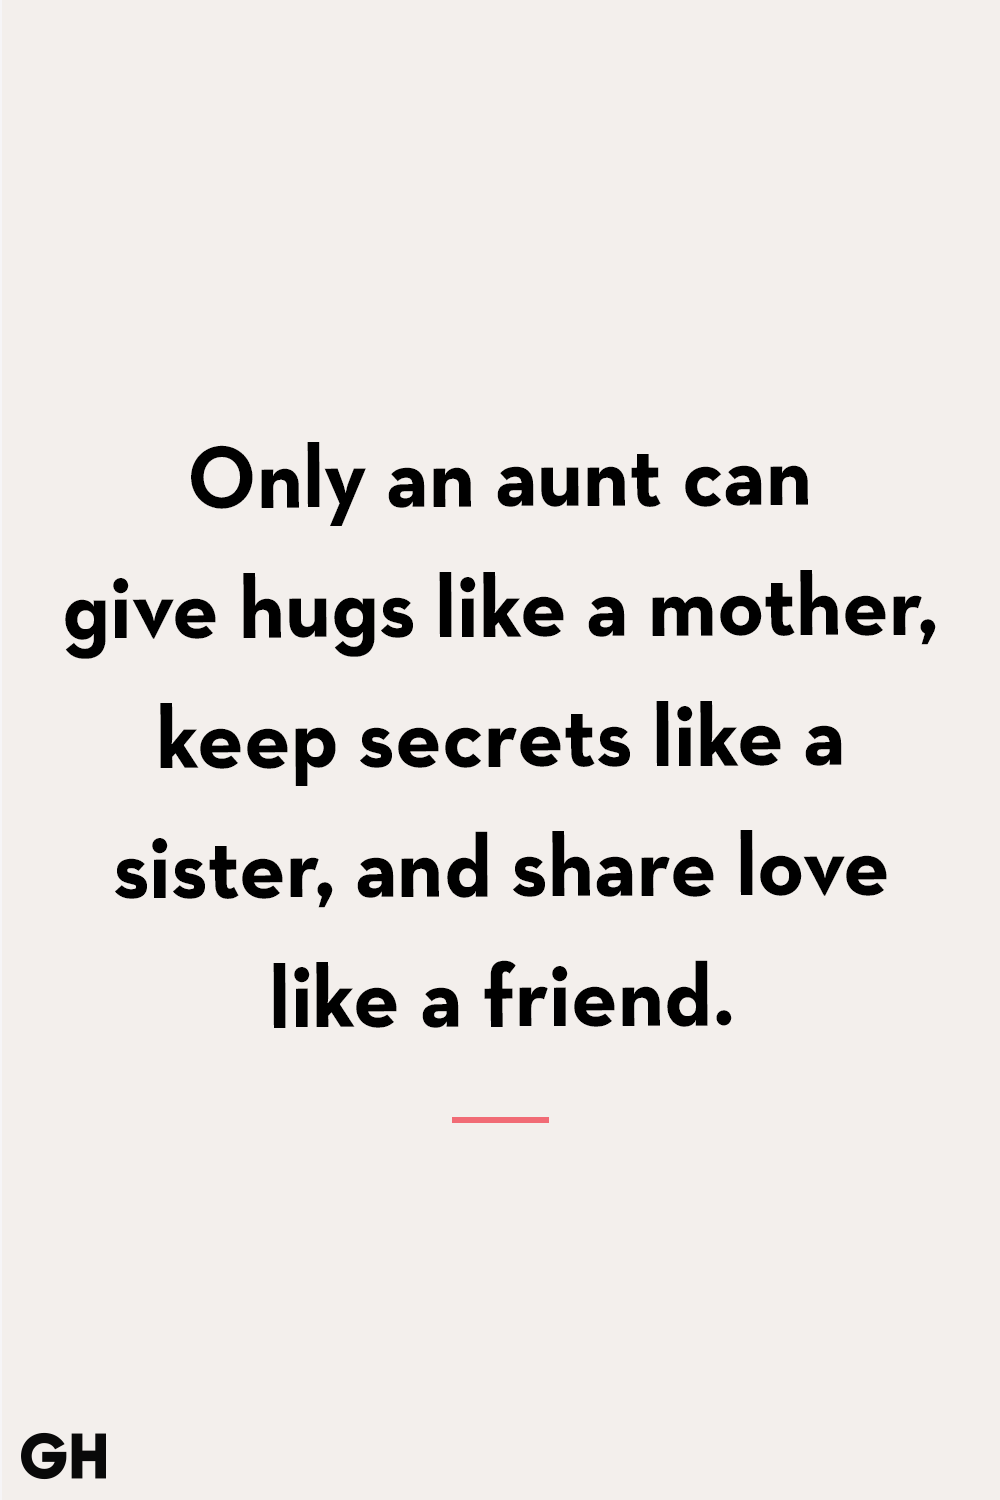 Aunt Quotes Like A Mother, Sister, Friend